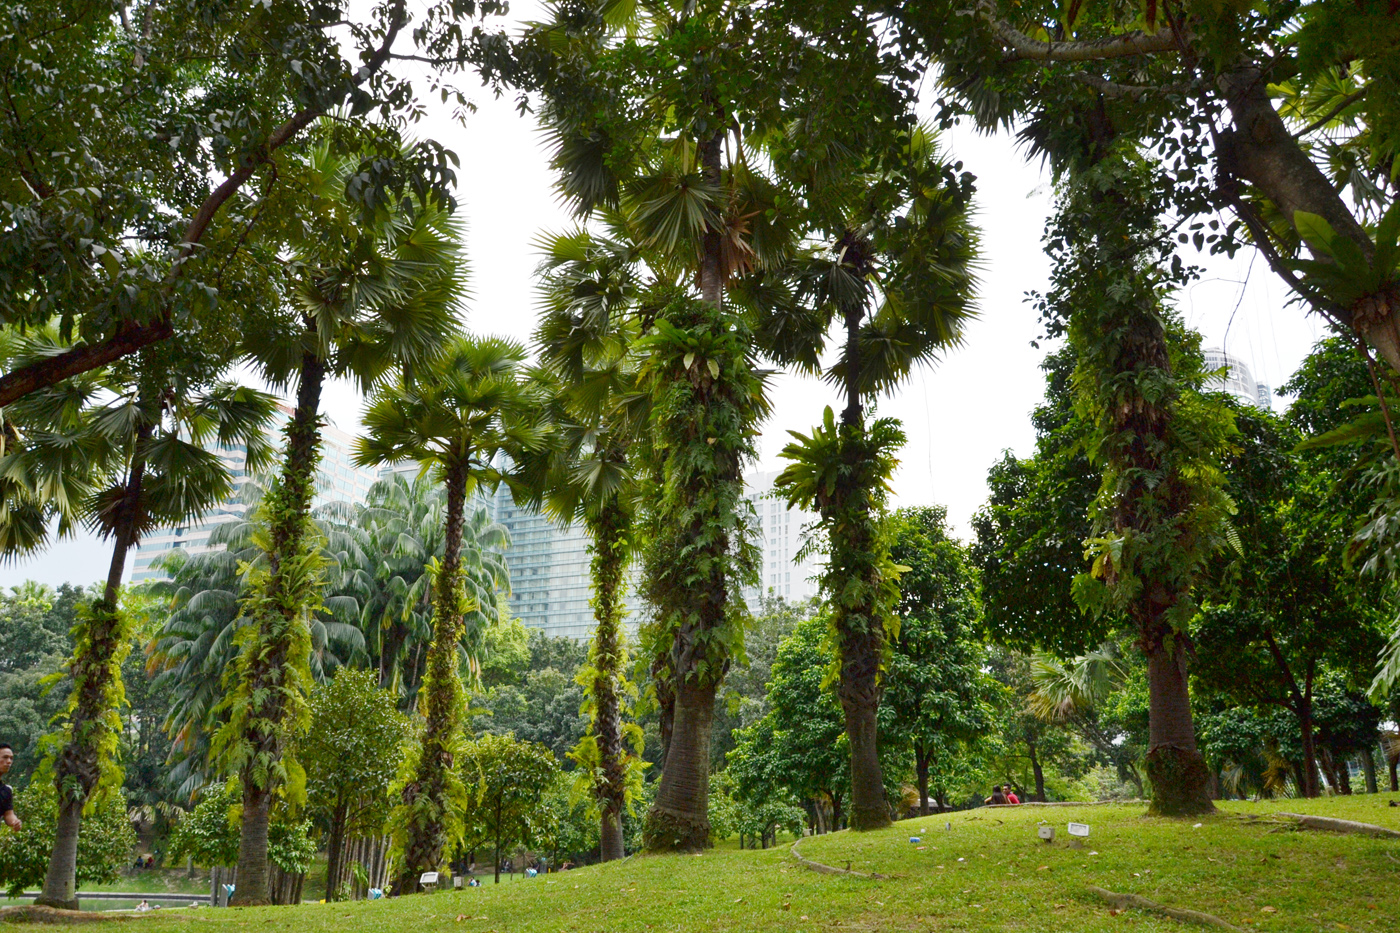 What-to-do-in-Kuala-Lumpur-petronas-tower-park